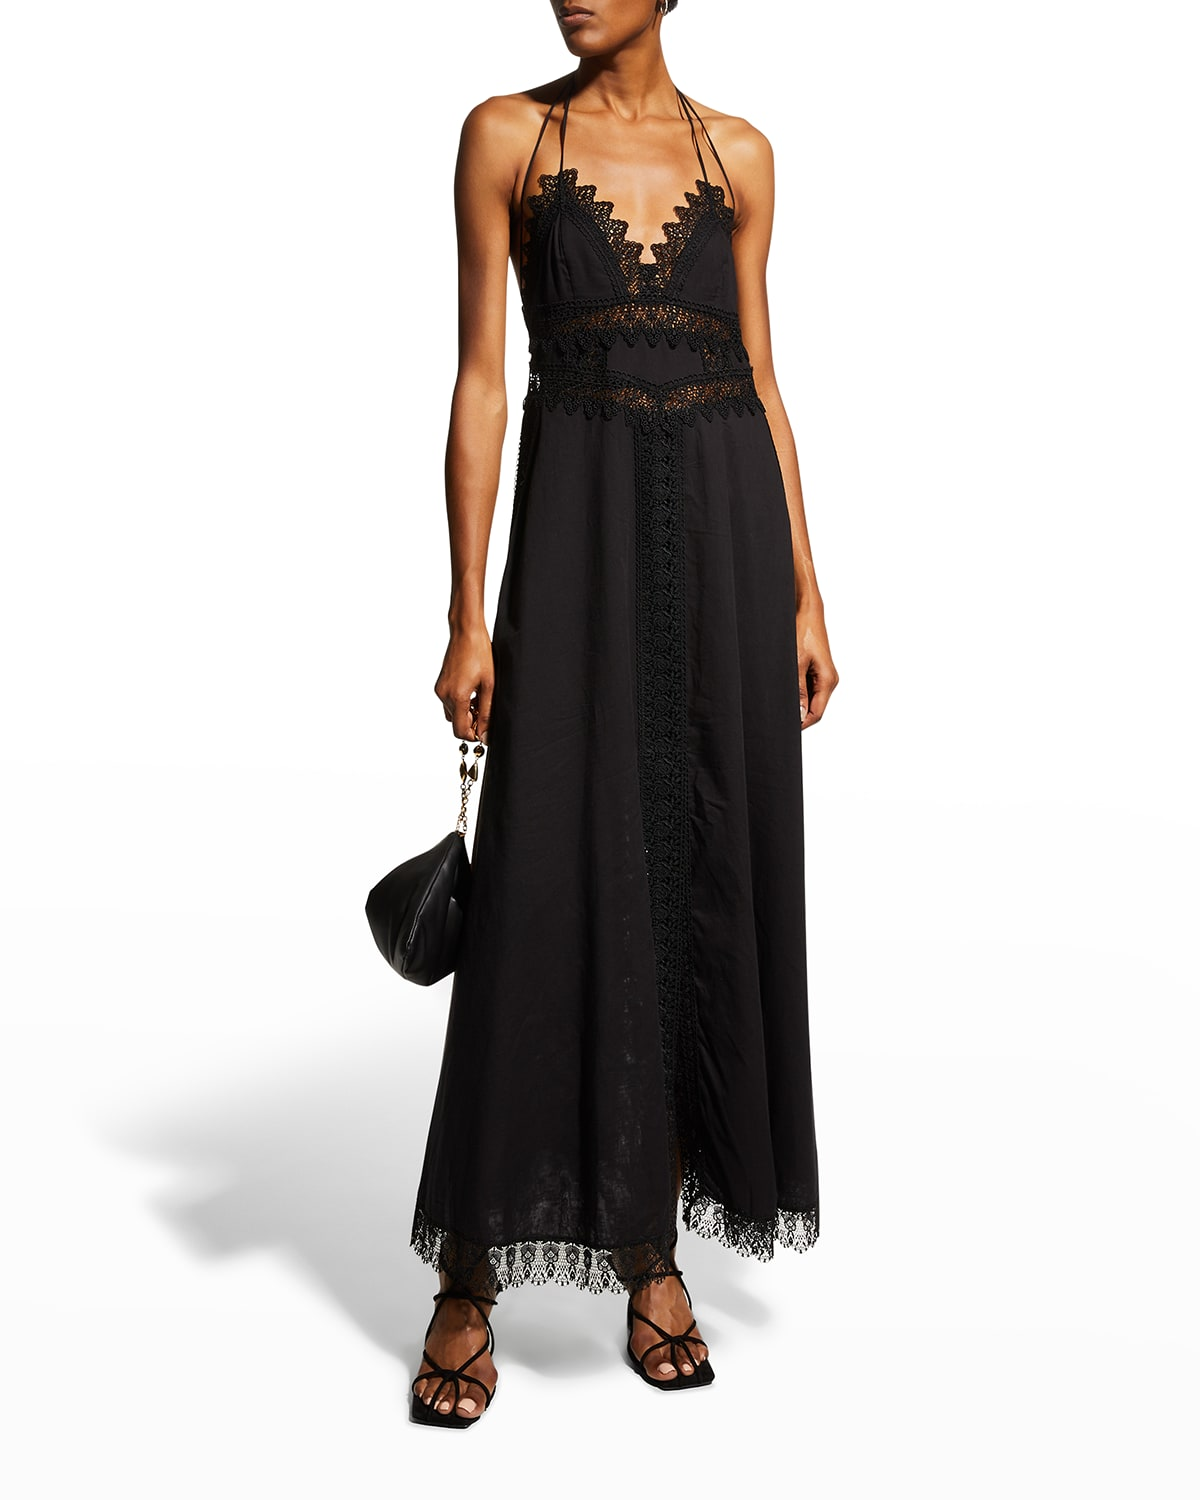 Imagen Long Dress with Lace